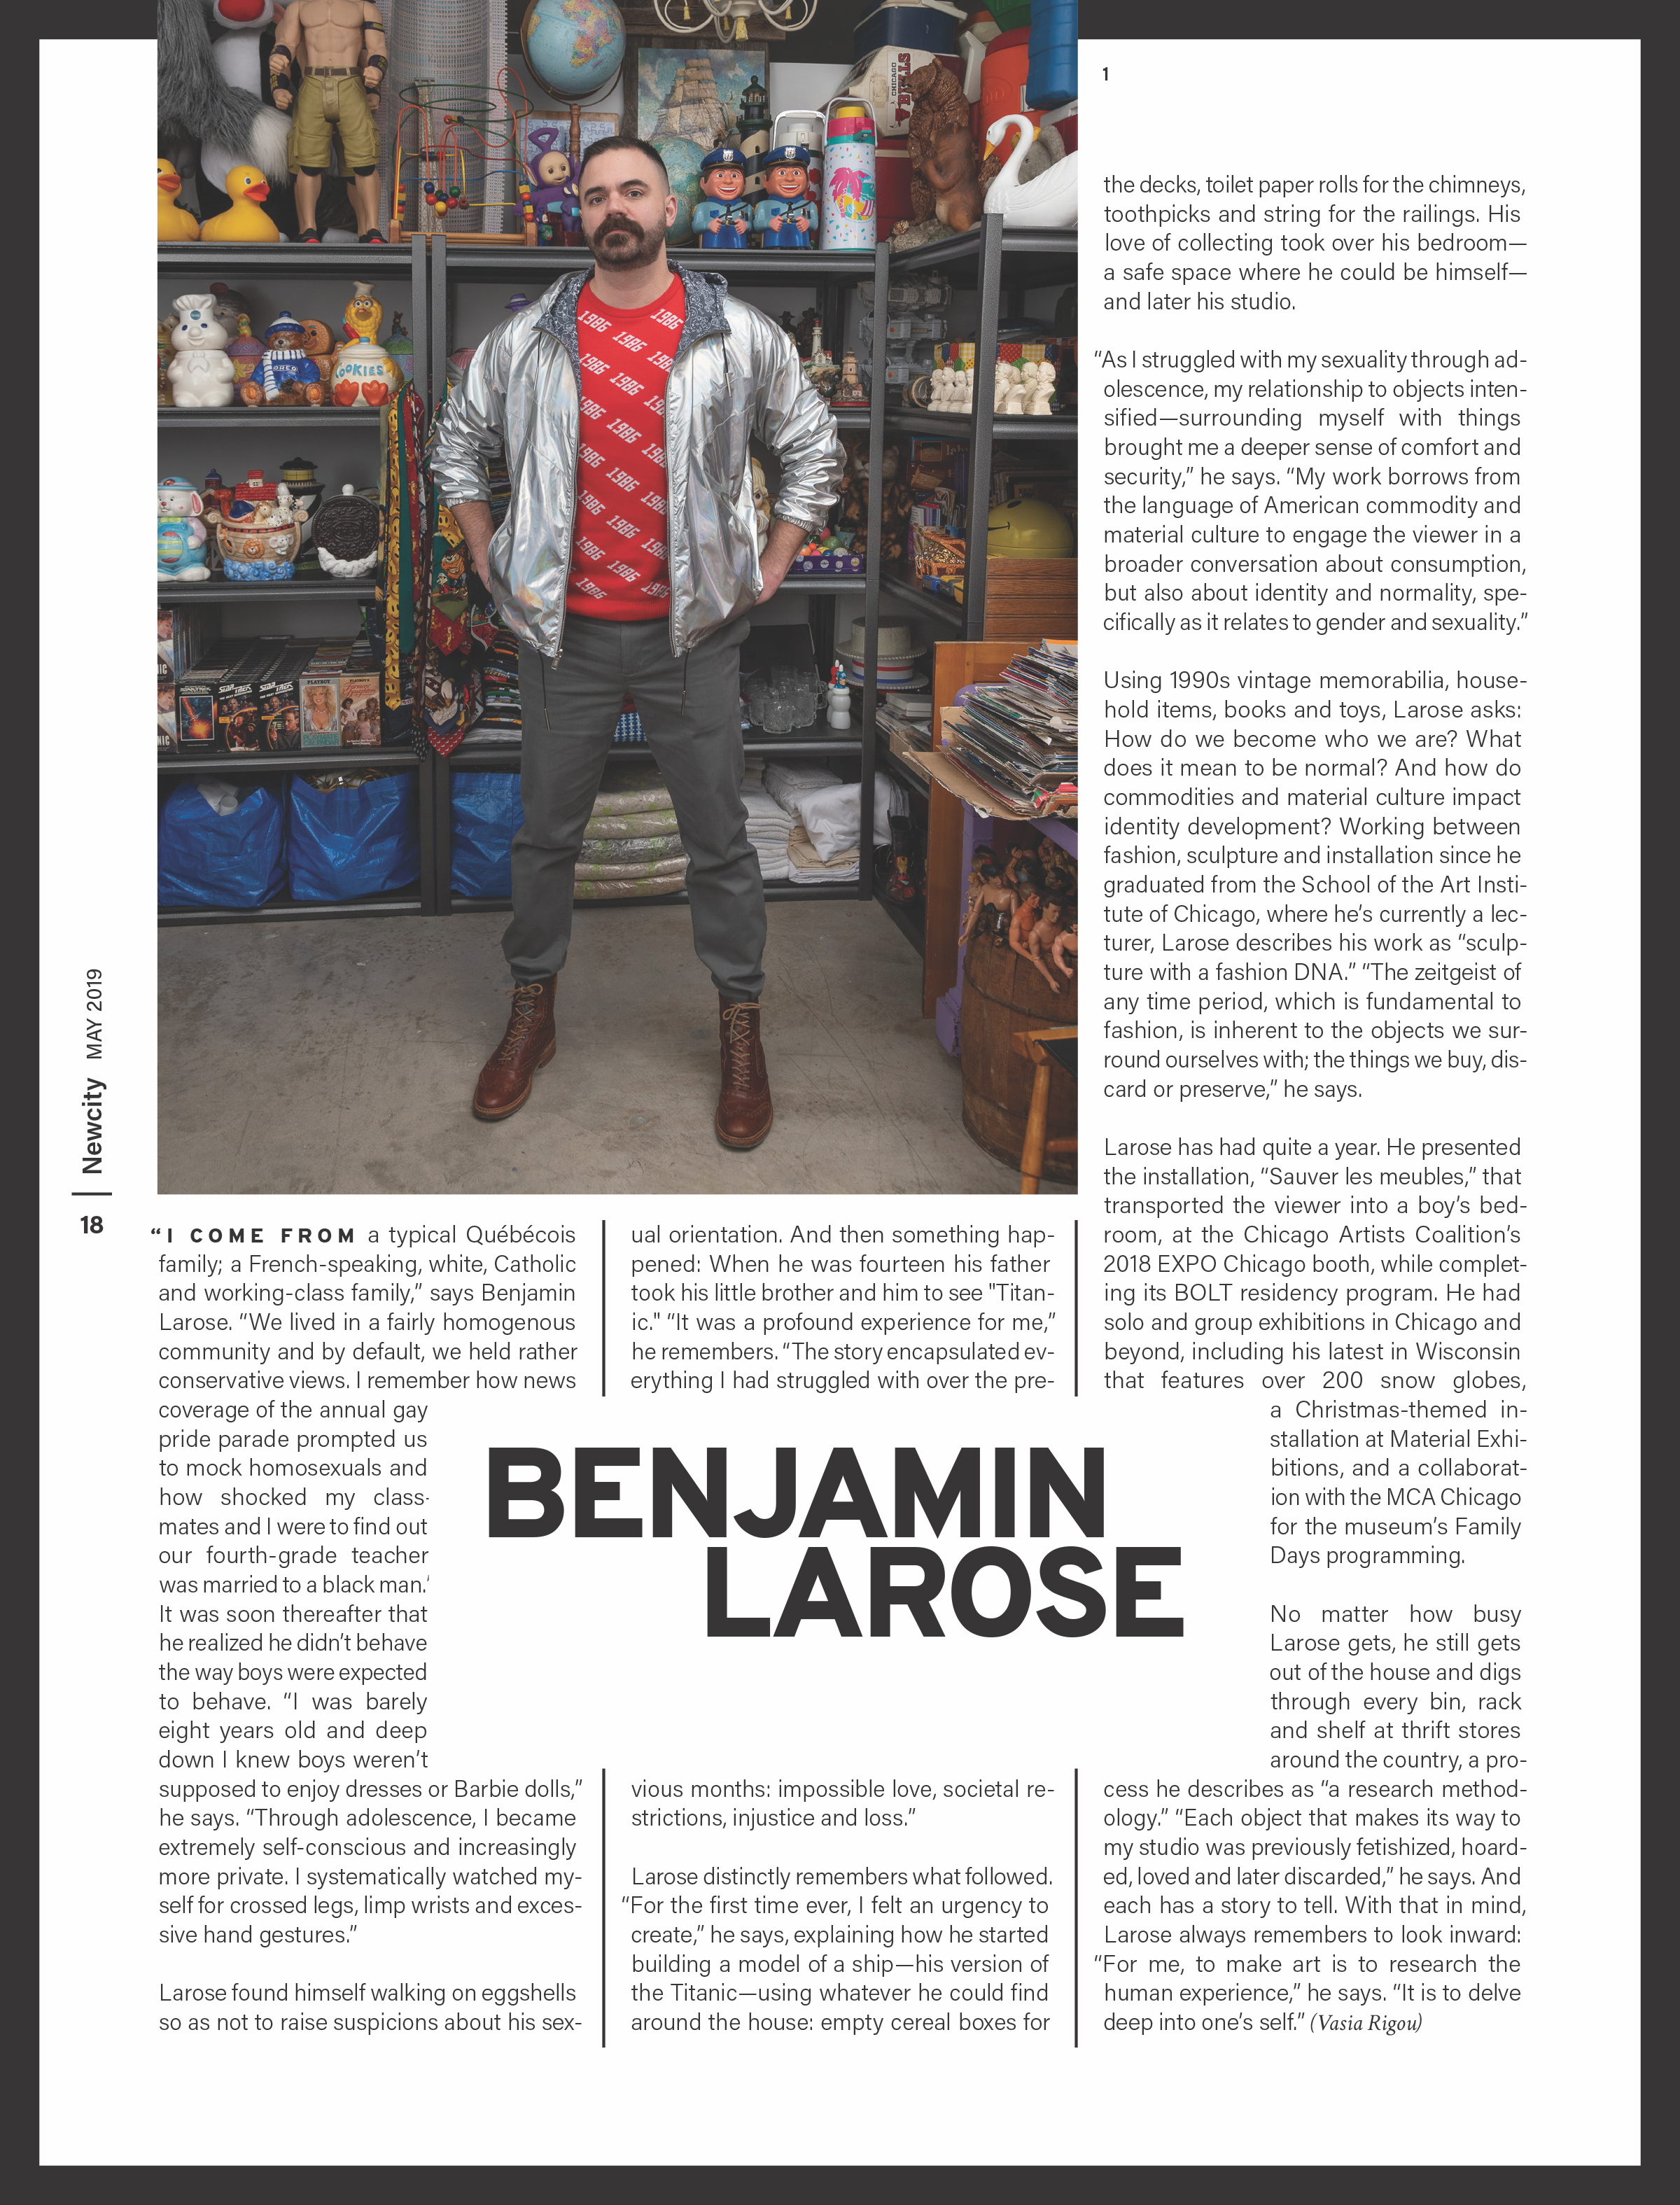 Benjamin Larose named among Breakout Artists 2019by NewCity Magazine - Each spring, when thawed bulbs burst forth from the soil with their exuberant and ill-informed joy for a precocious summer, the writers of Newcity Art match the spirit of the season by profiling a few of the artists who represent the unbounded energy of art-making in Chicago. They make Chicago compelling, complex and worth being a resident and a viewer of art. They challenge us and bring us the questions we never dared to ask and might not want to engage. And they are but a few among many who are doing just the same.To read the full article, click here!